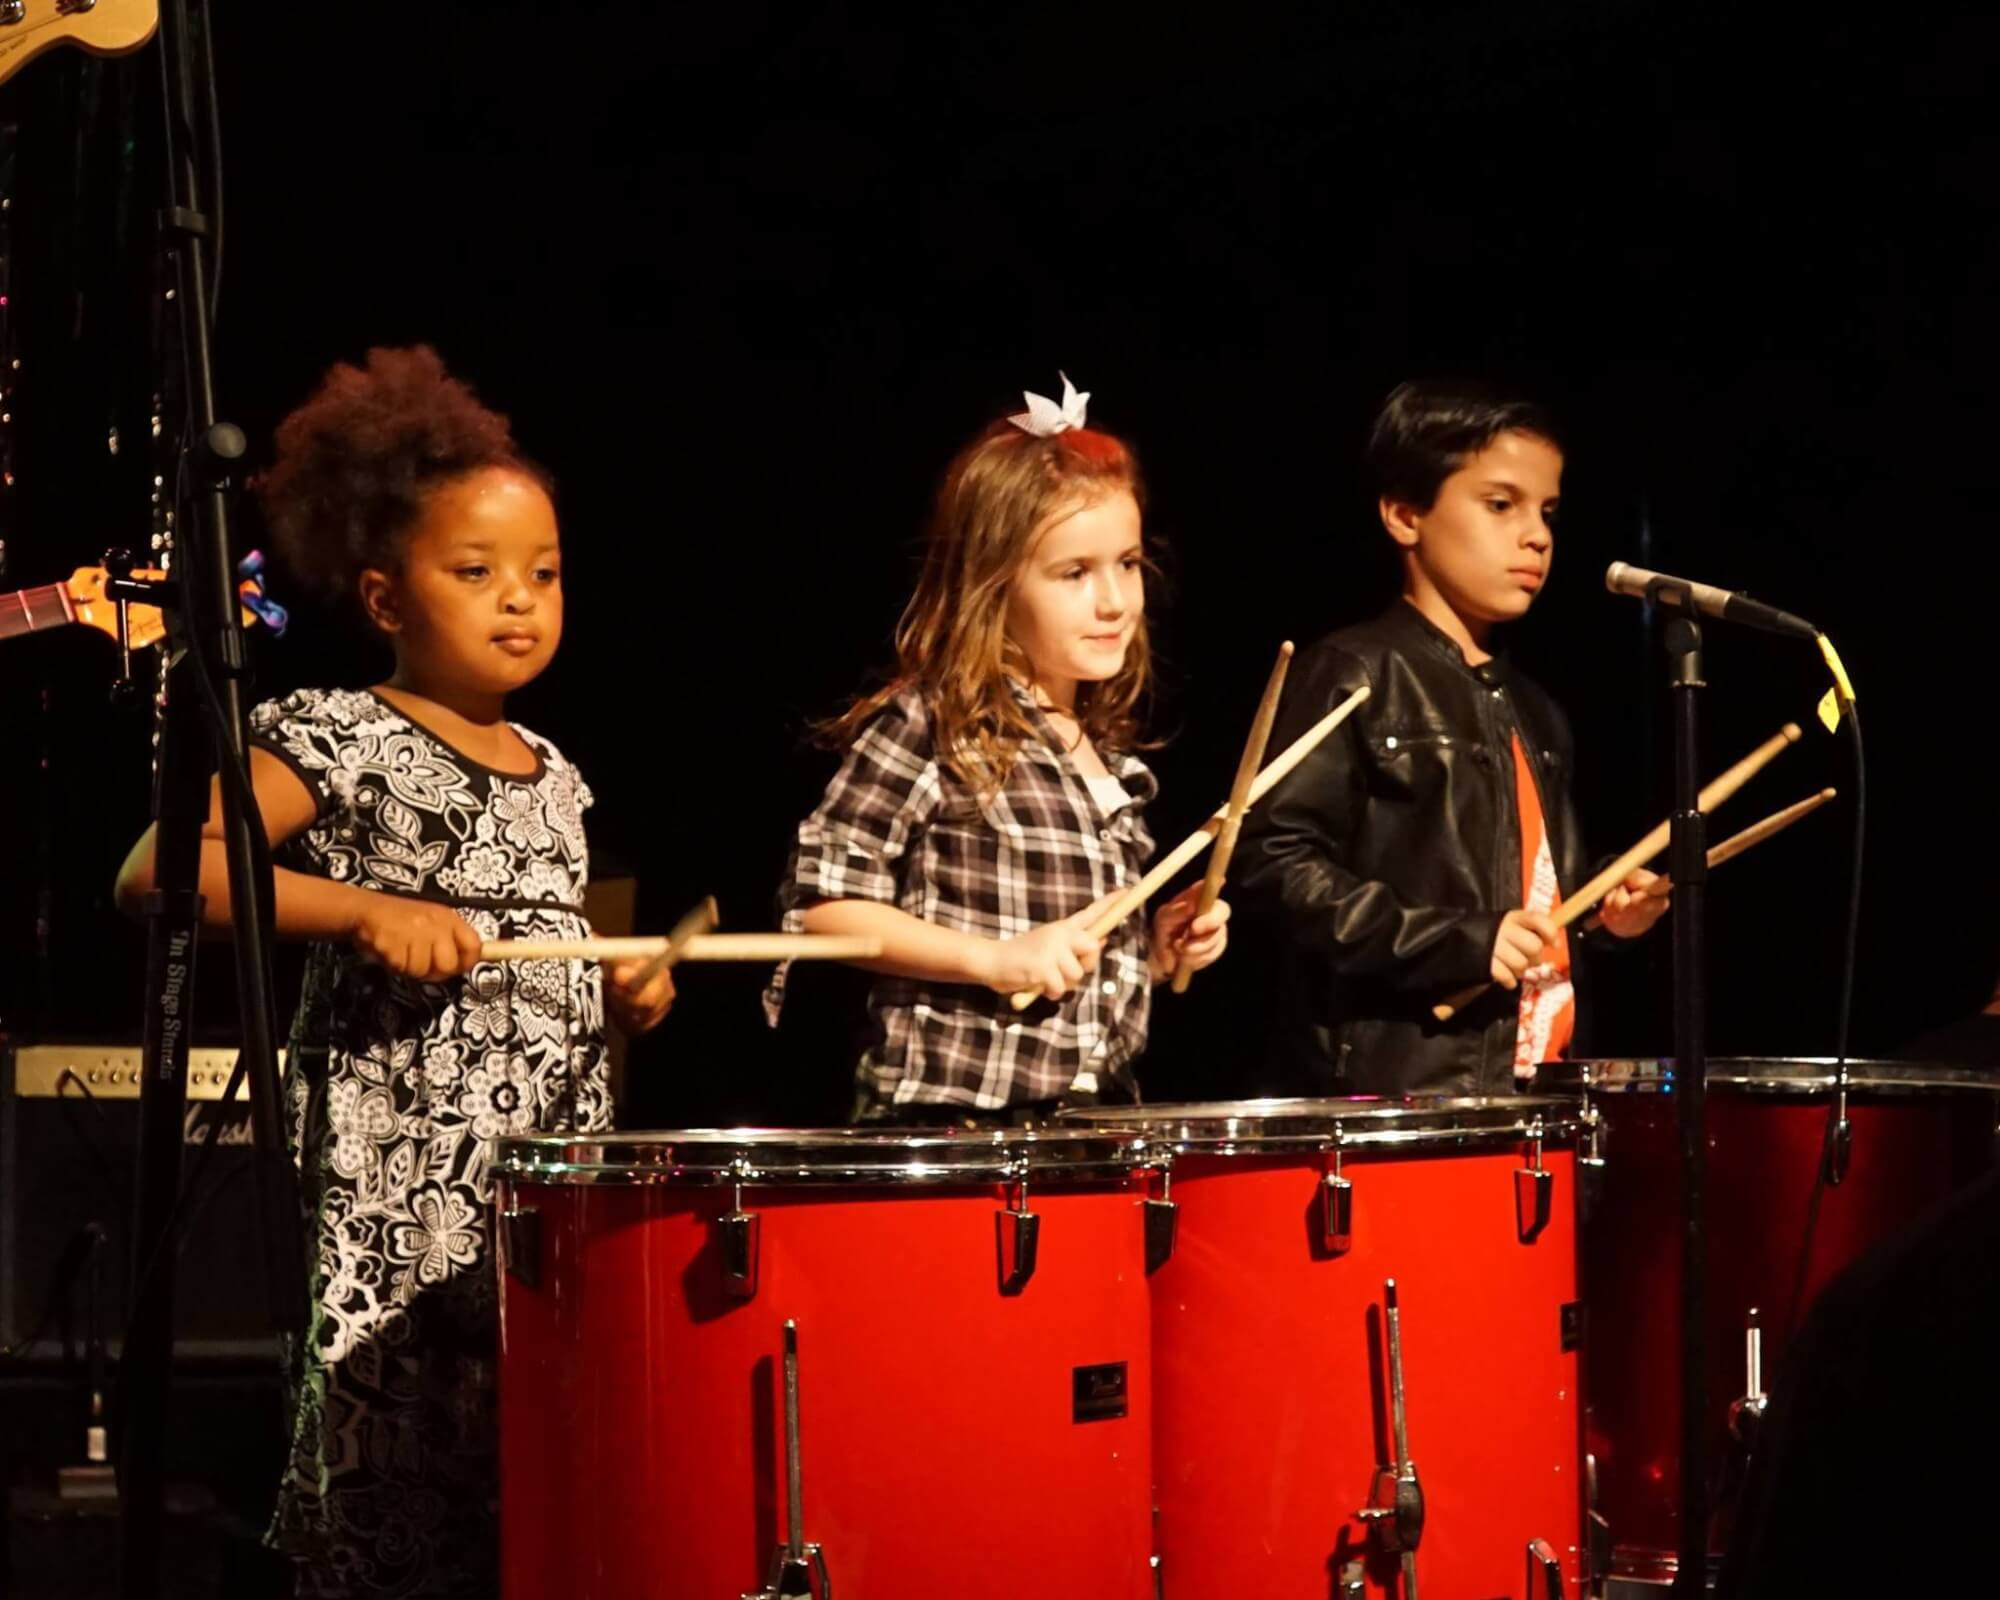 Rookies students play drums in the Queen show.